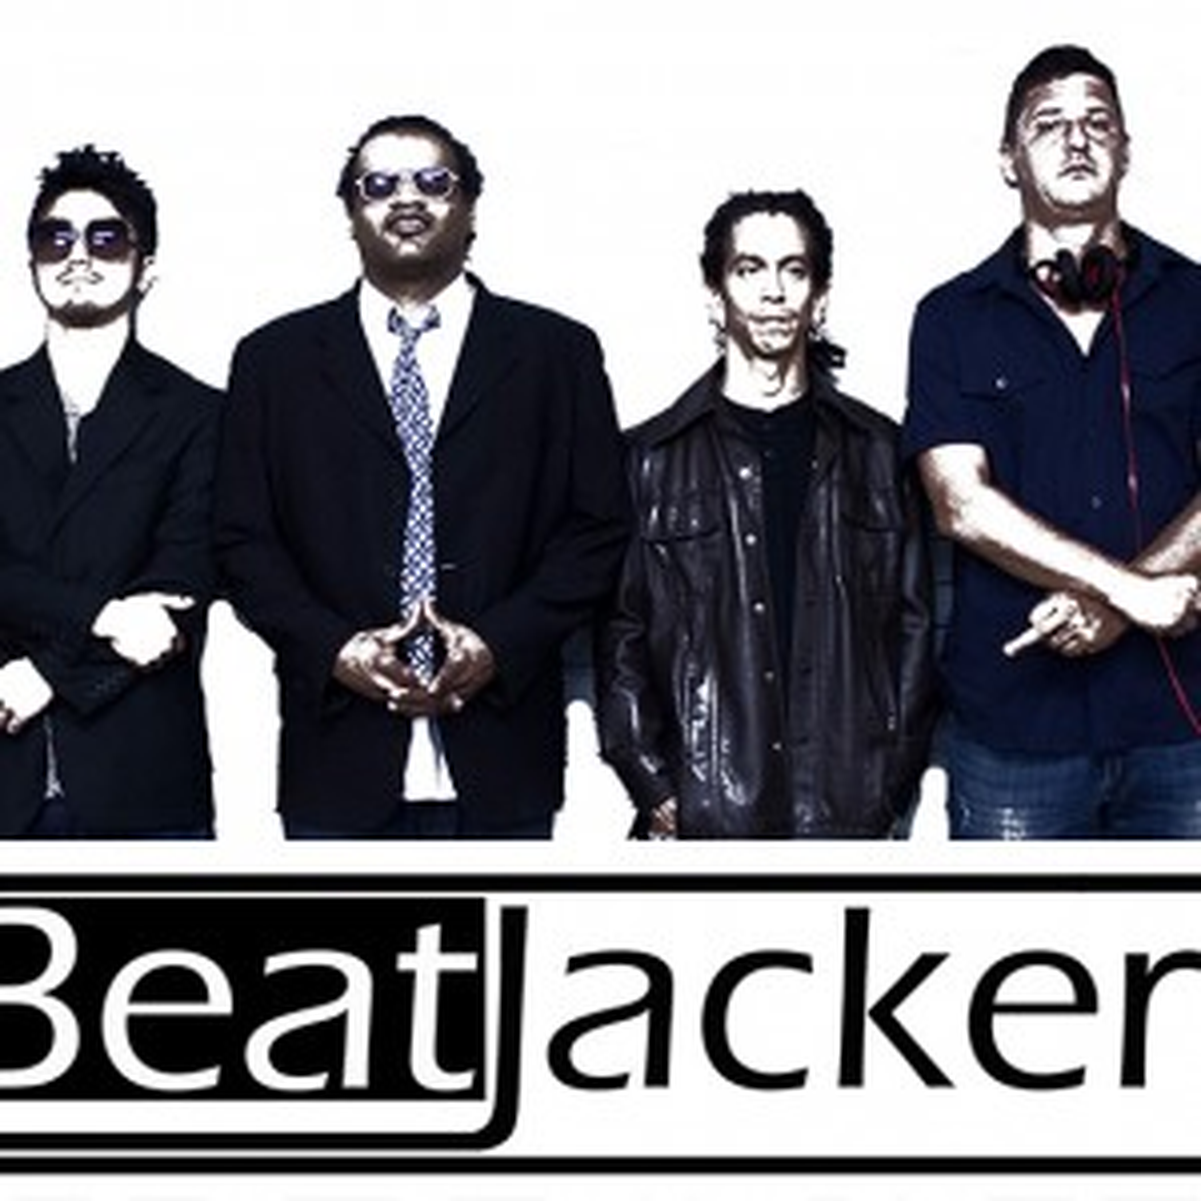 The BeatJackers